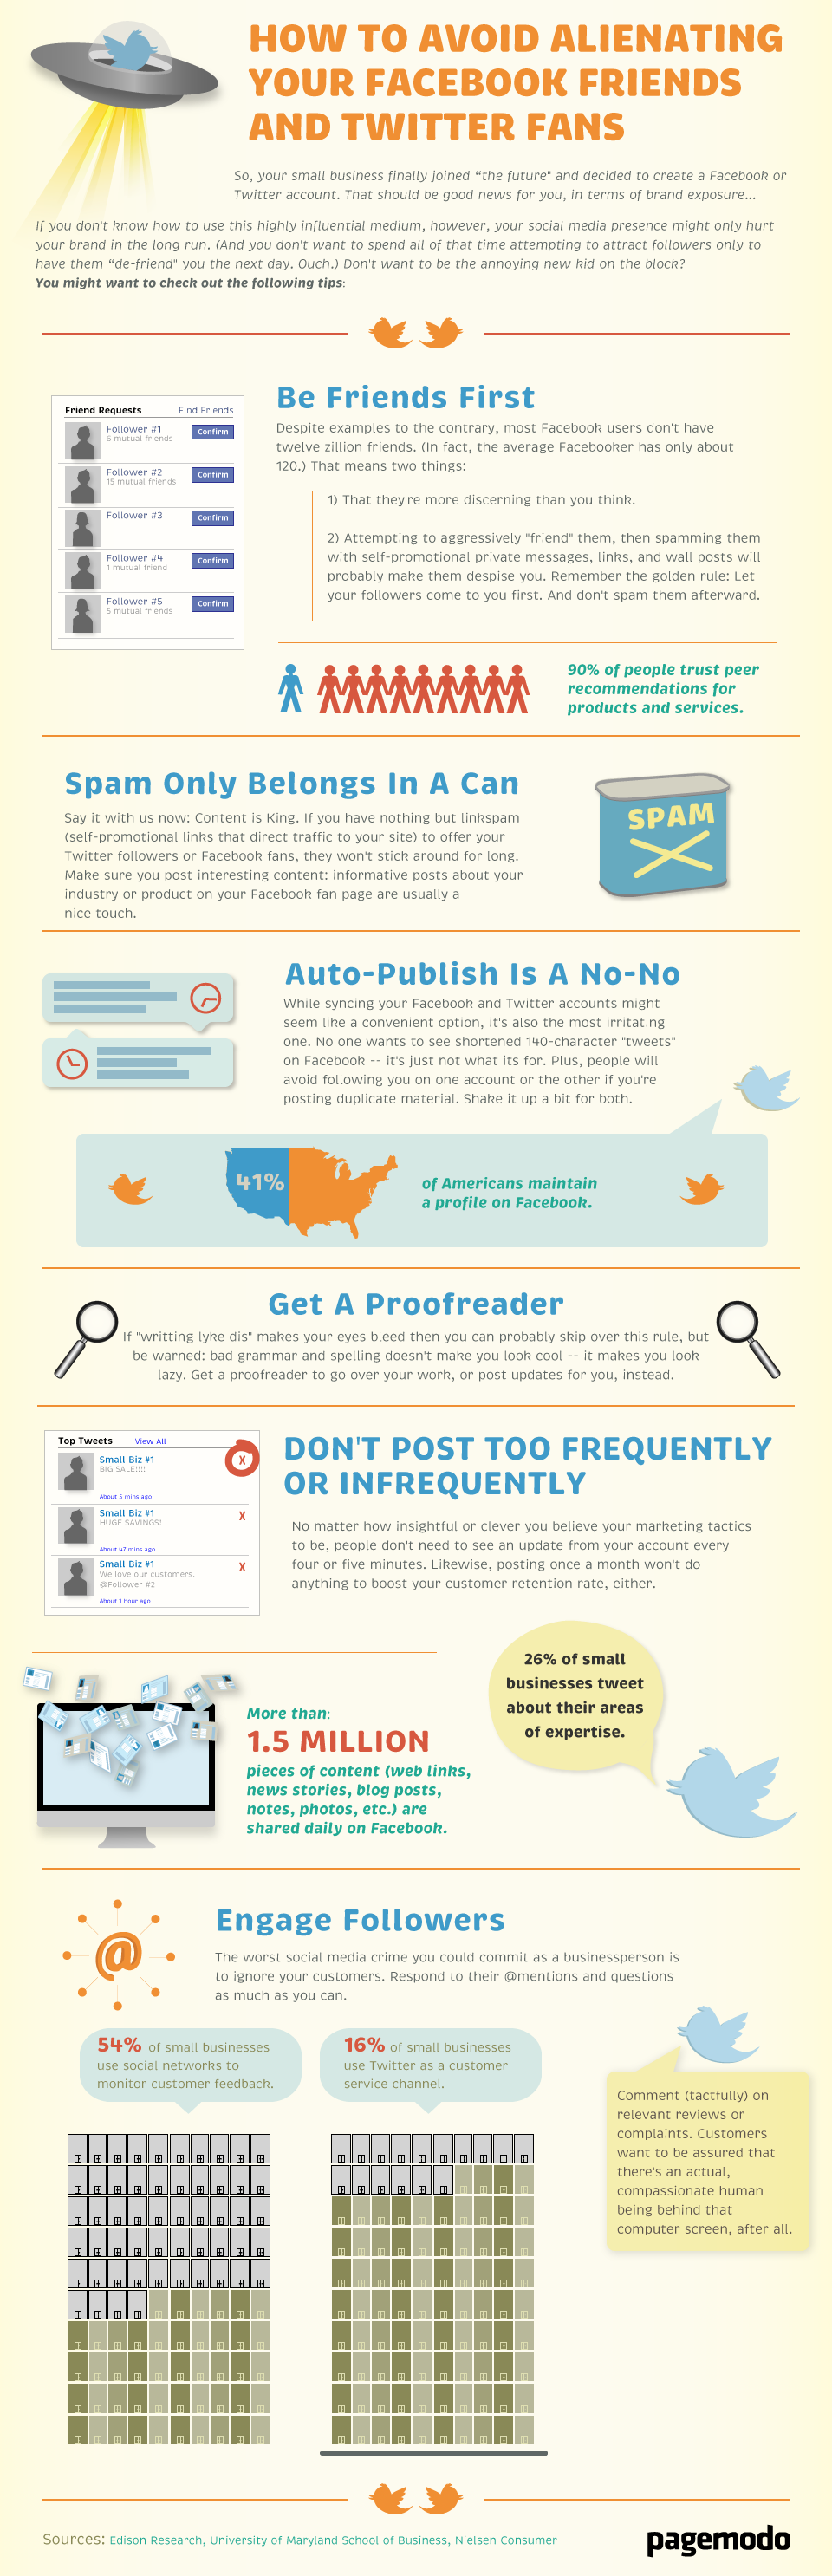 How to Avoid Alienating Your Facebook Friends & Twitter Fans [INFOGRAPHIC]